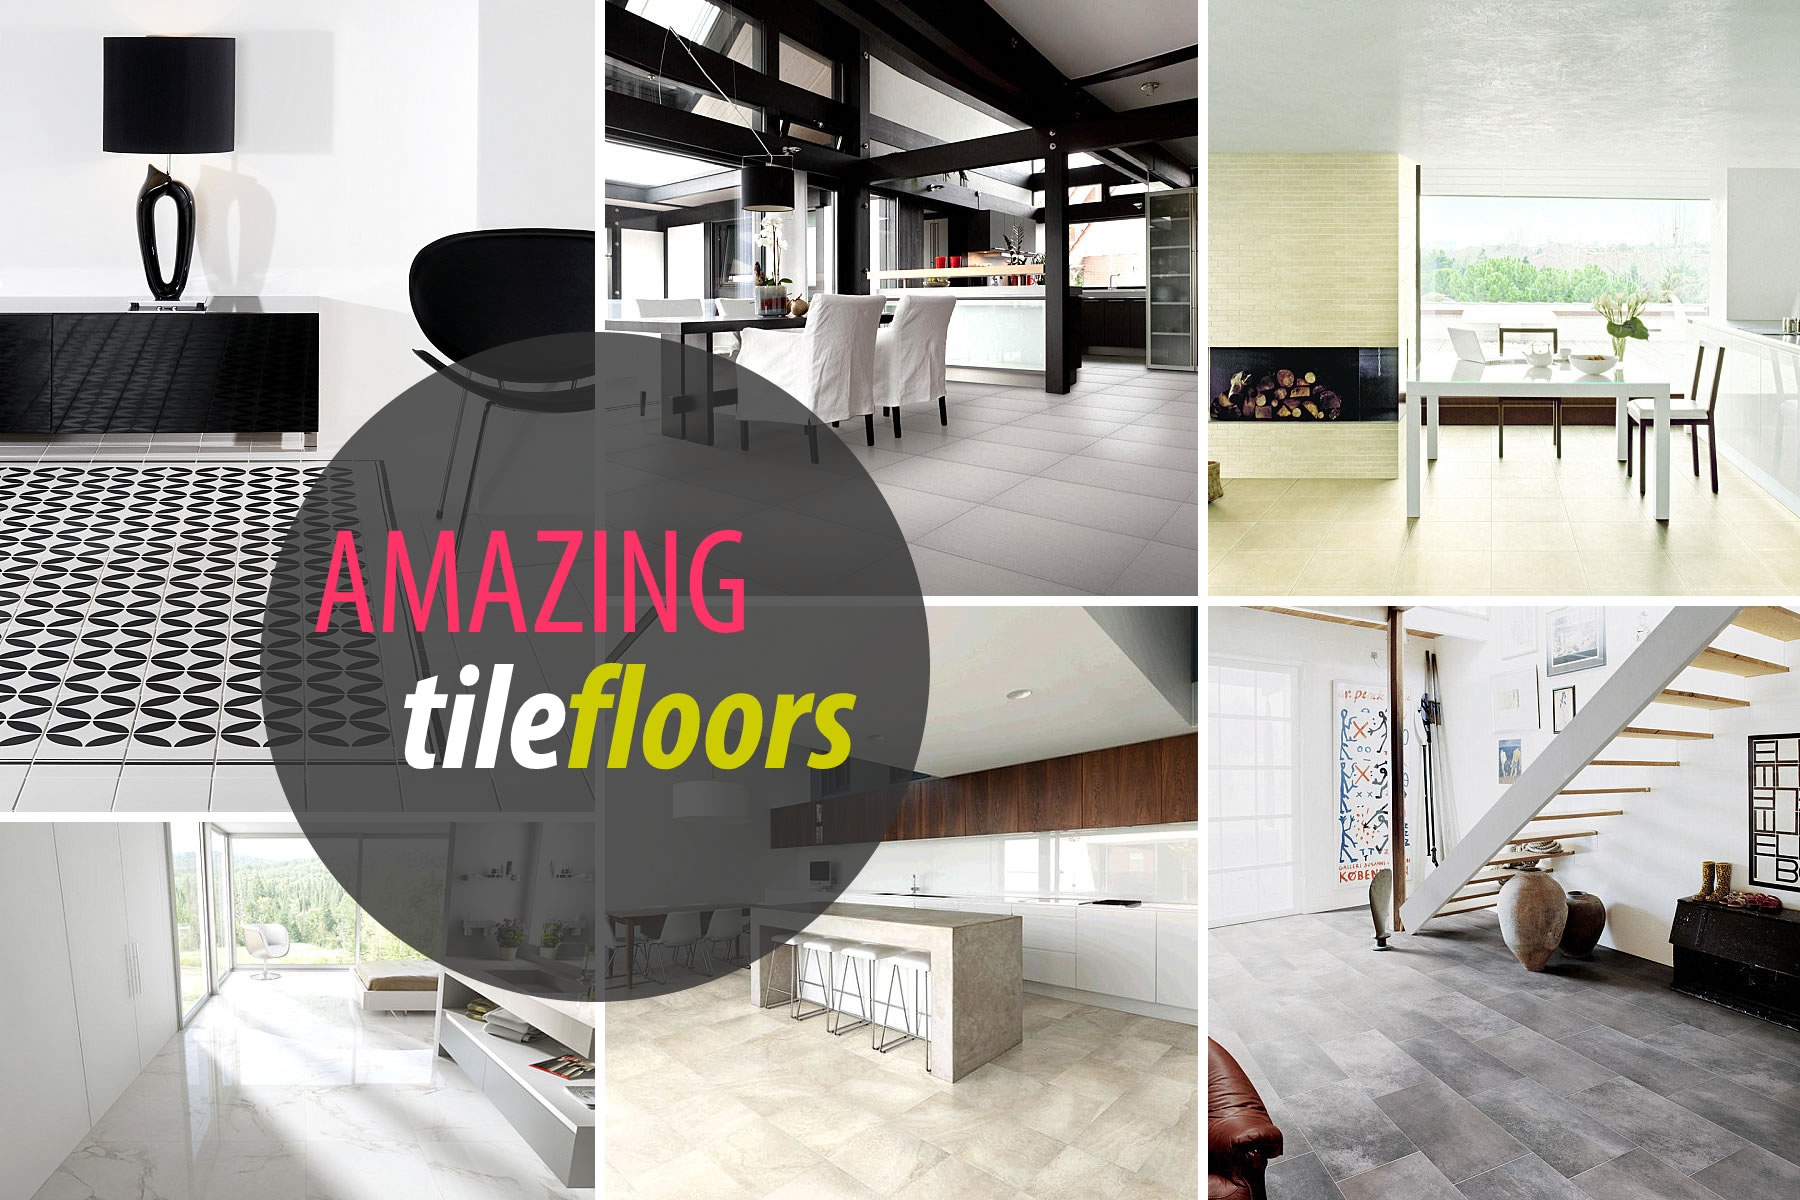 Tile floor design ideas view in gallery tile floors designs dailygadgetfo Gallery